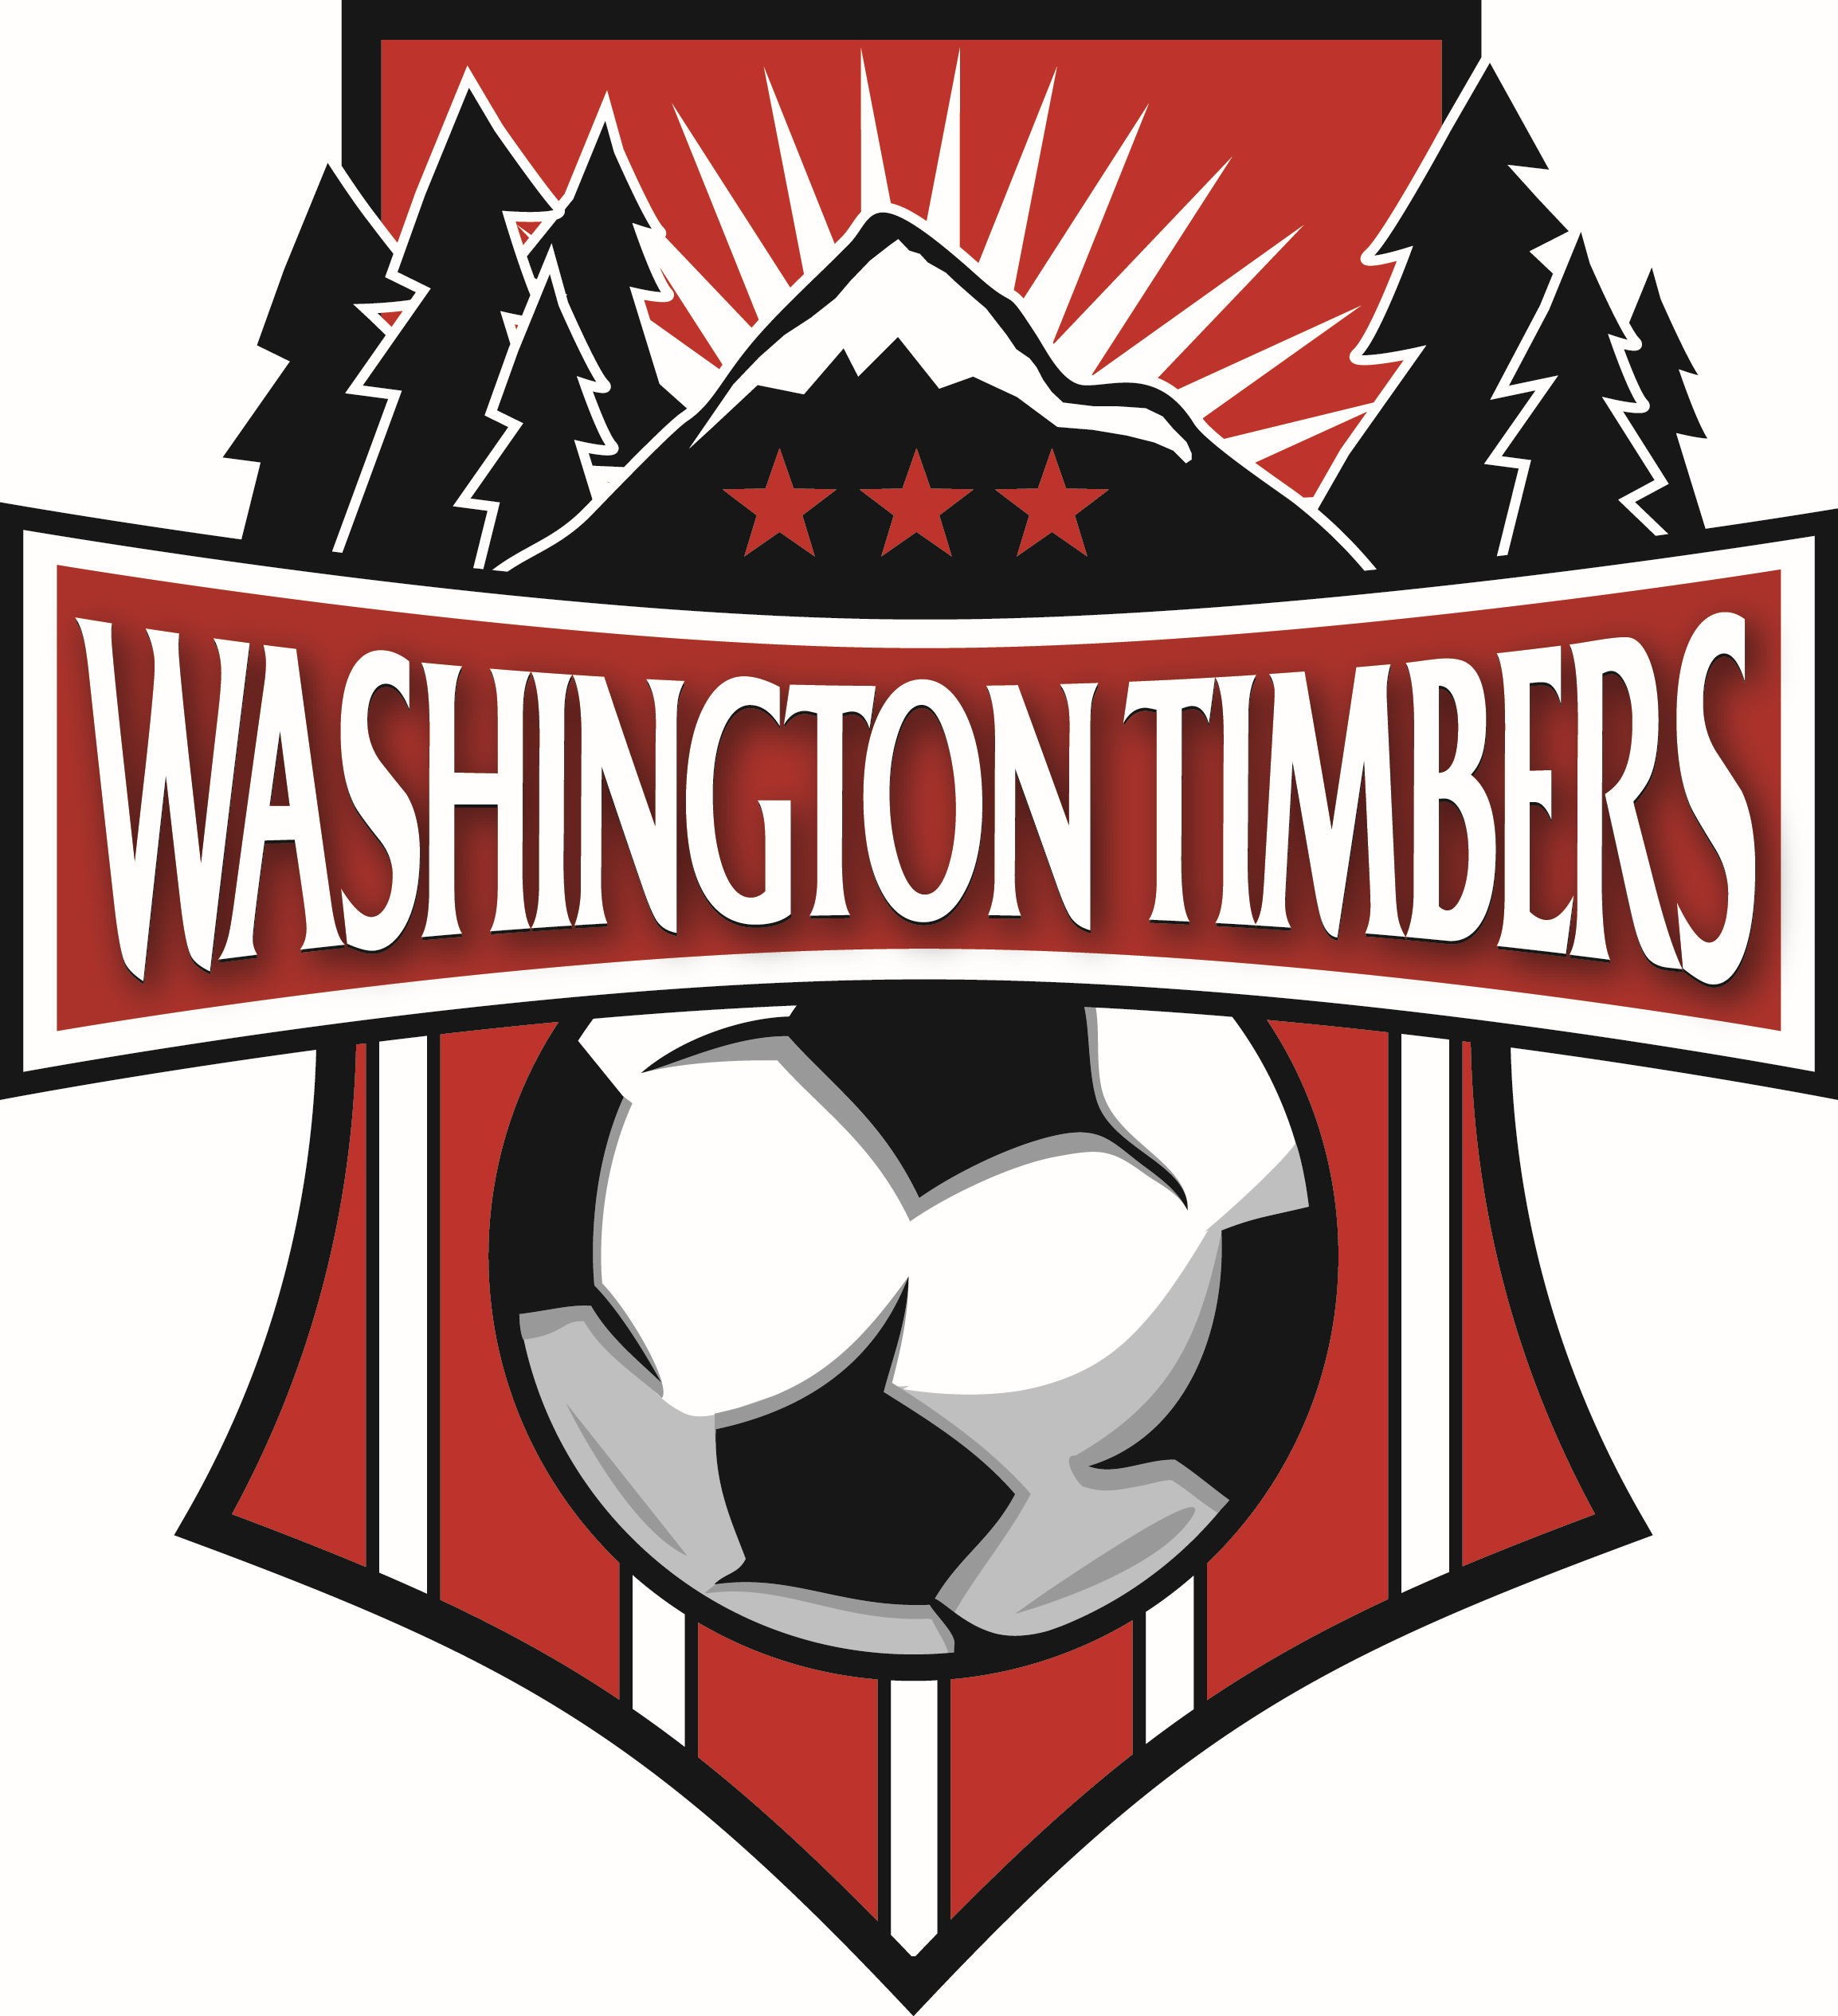 Washington Timbers